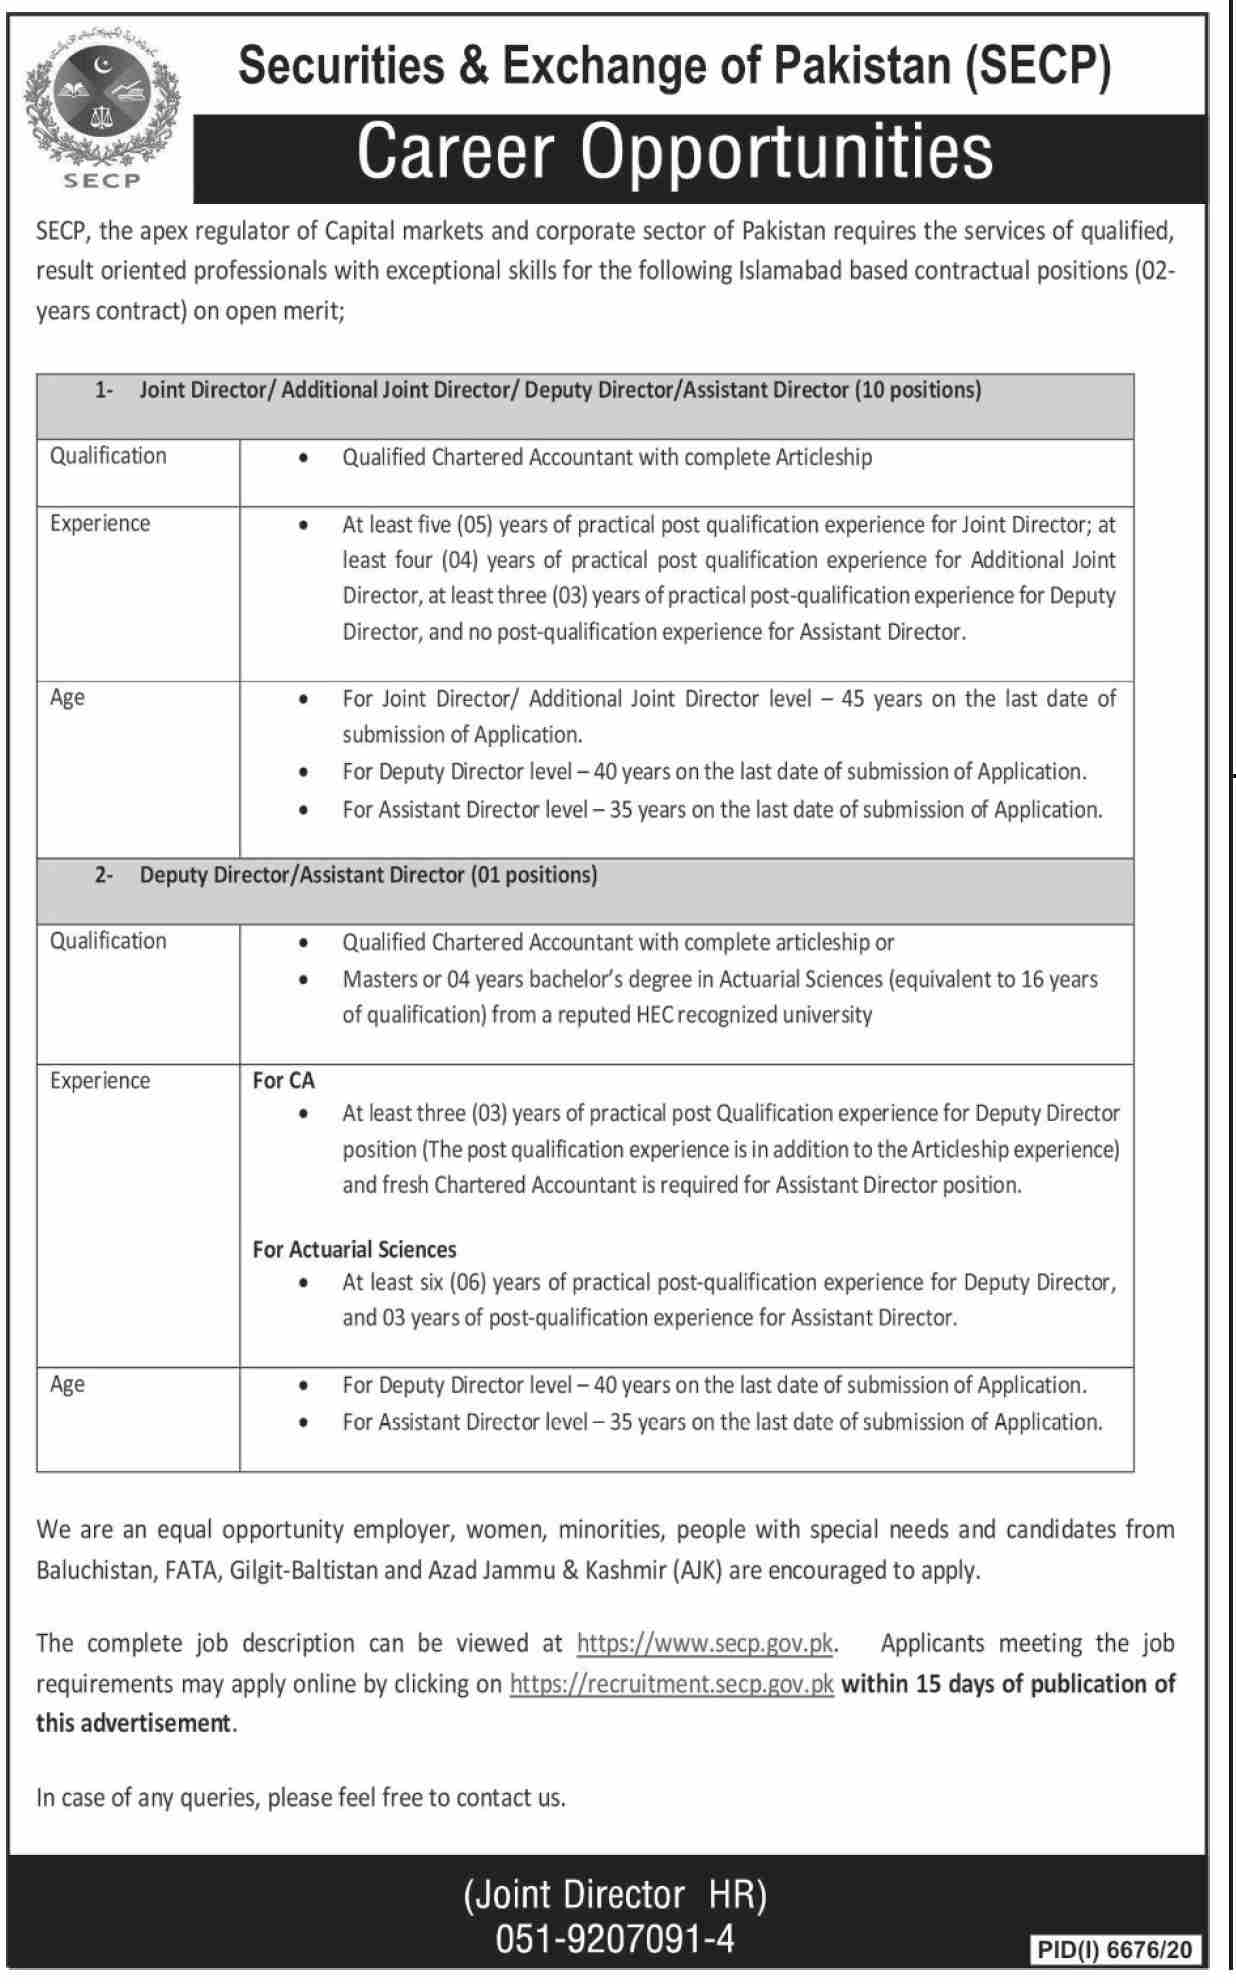 Government Jobs in Pakistan today Islamabad SECP advertisement